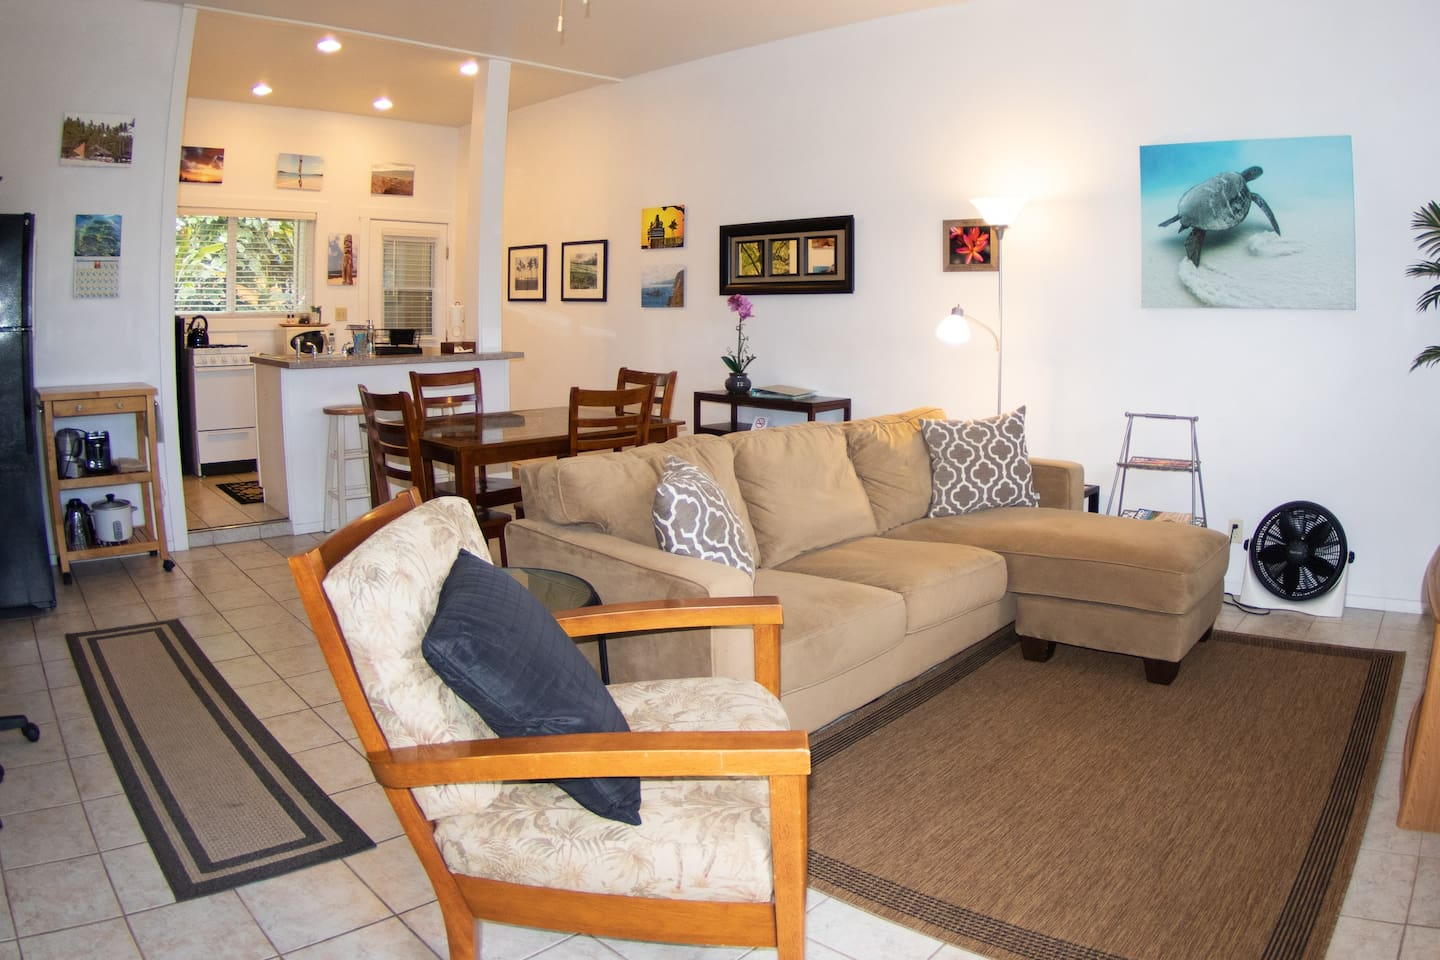 Relax and unwind in the comfy living area.